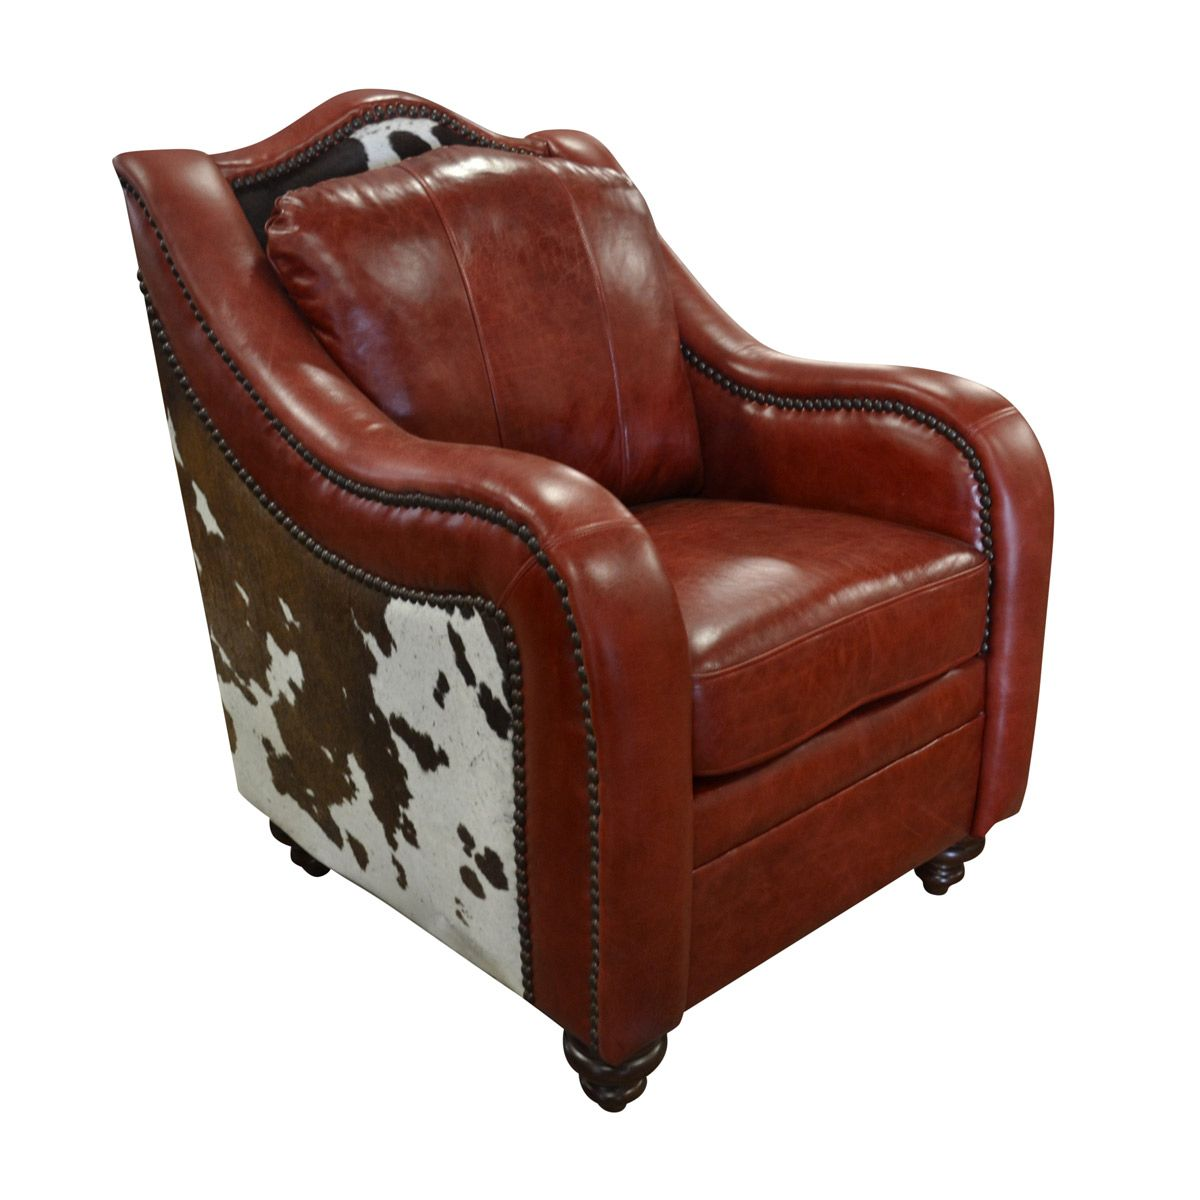 Atchison Chair